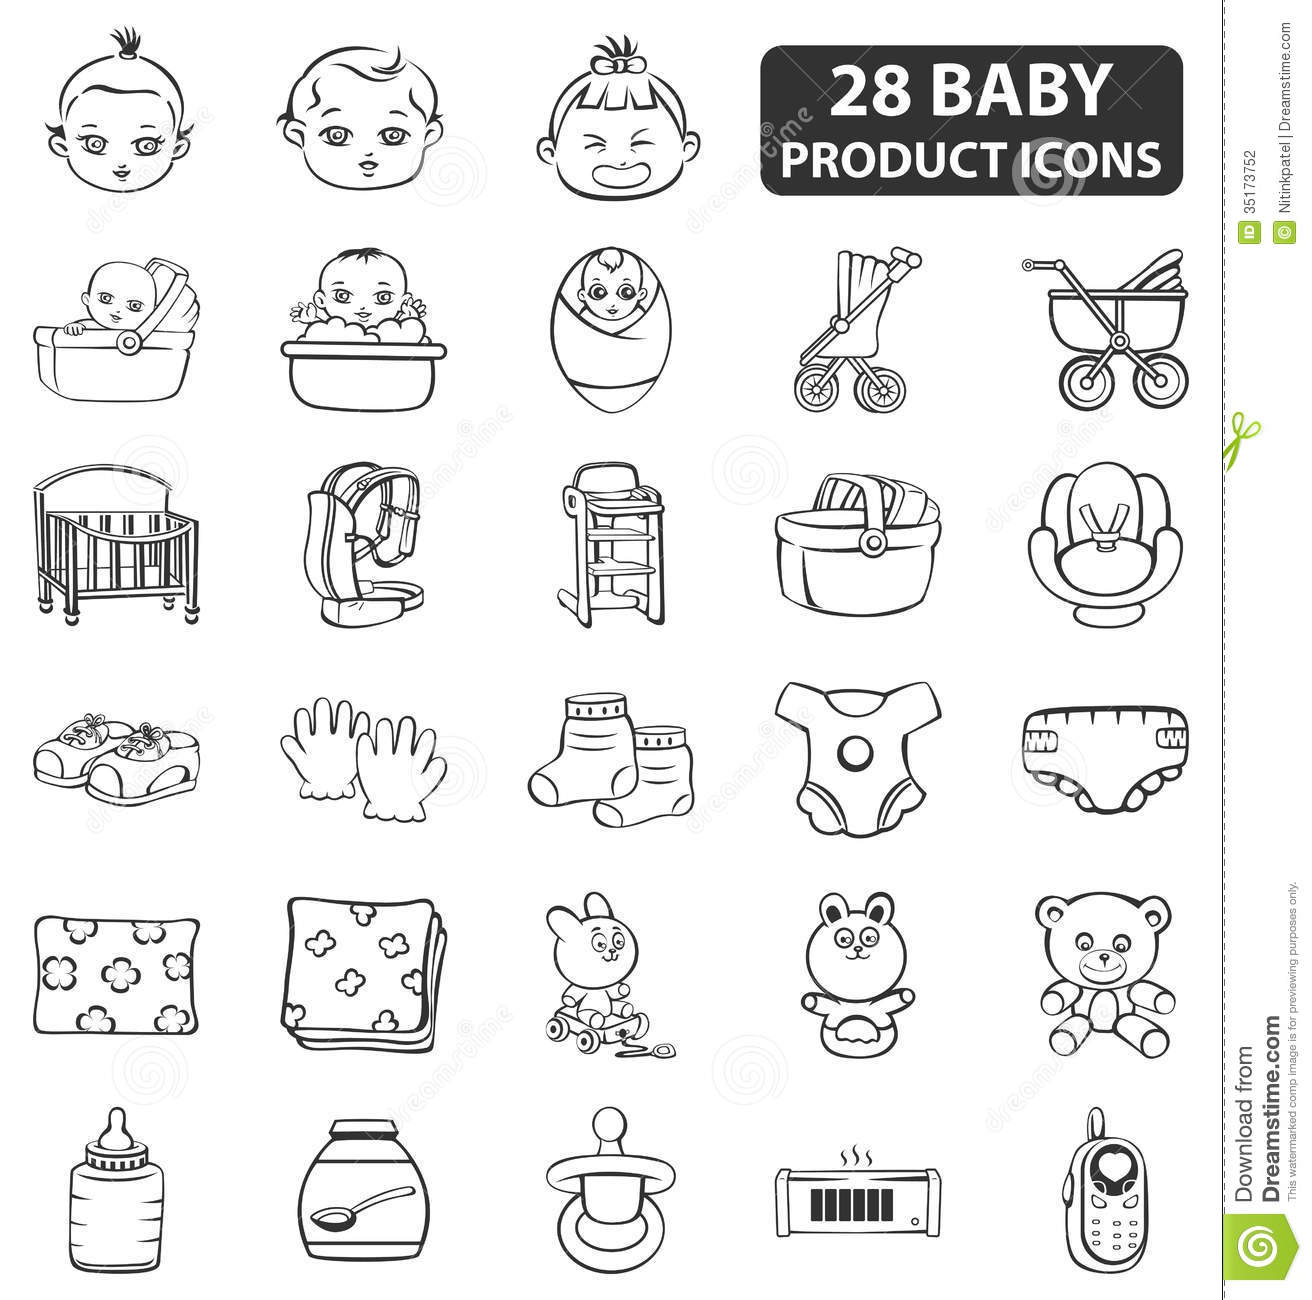 Baby Product Icons Stock Illustration Illustration Of